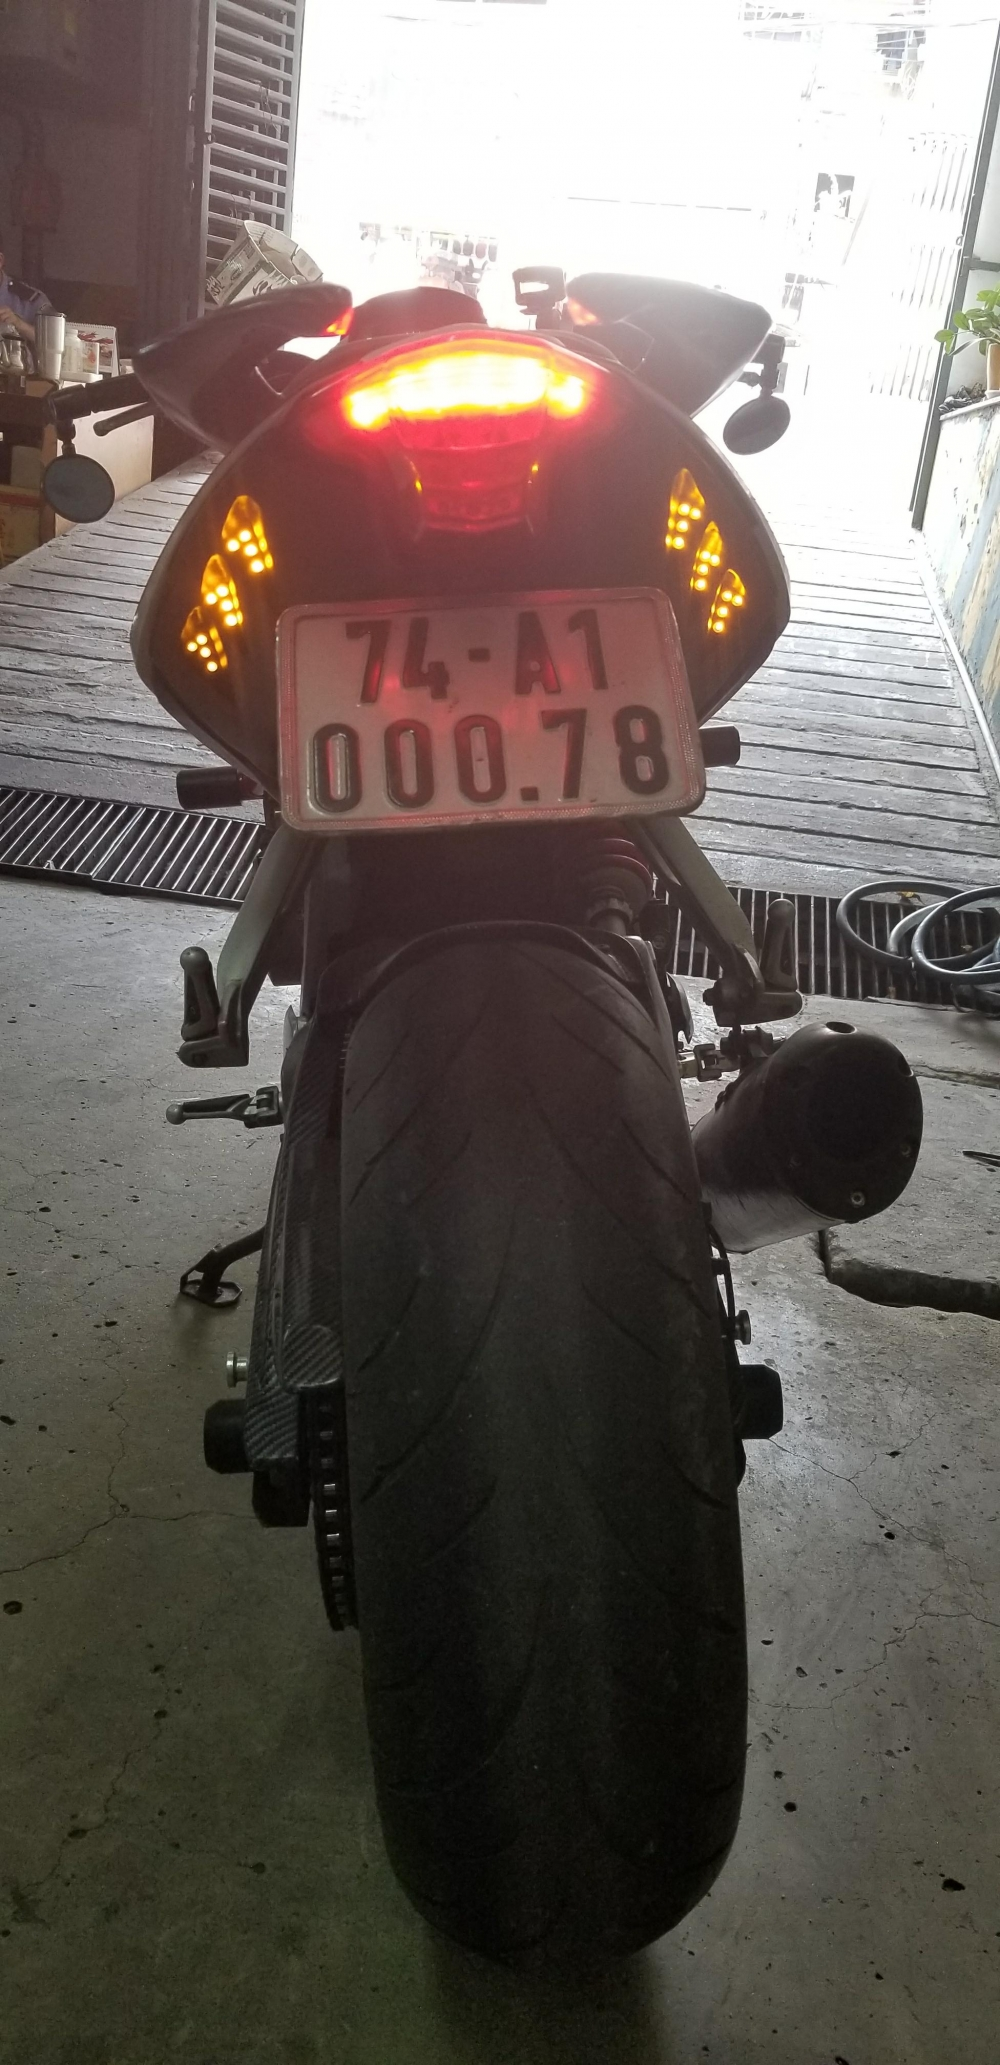 CAN BAN__BENELLI BJ600GS 2014 - 6